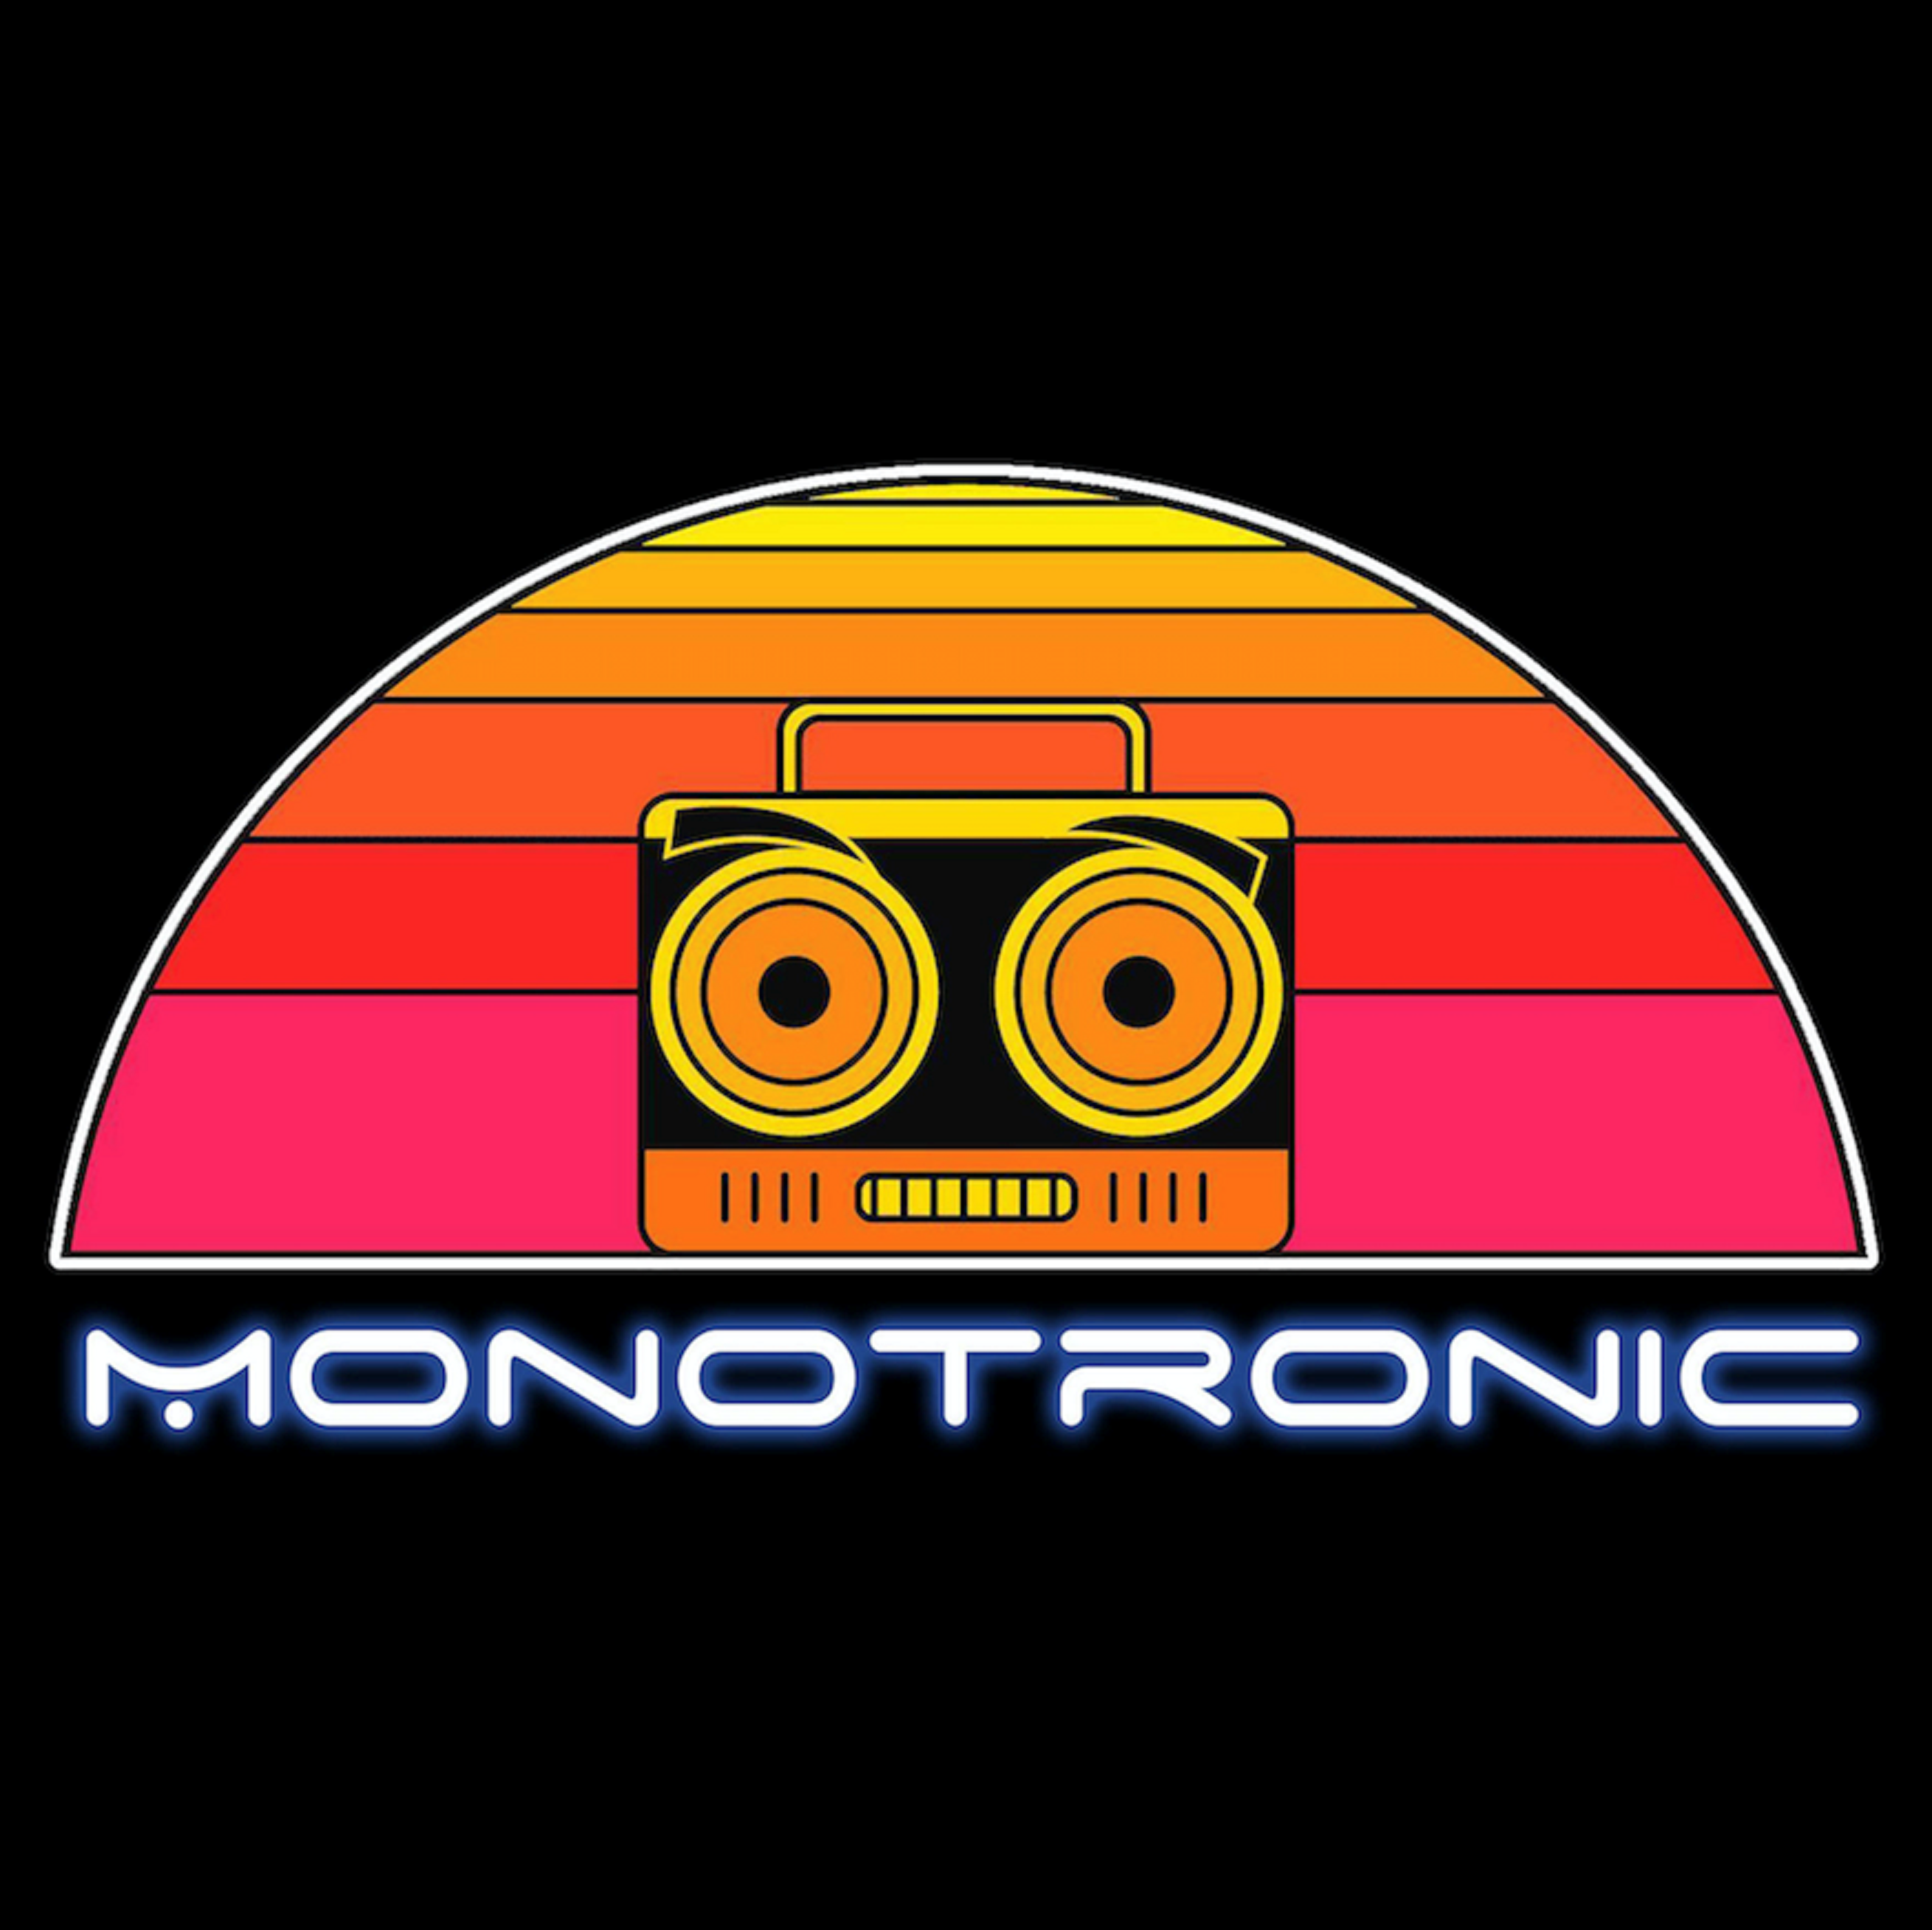 Monotronic SELF-TITLED ALBUMDUE OUT 9/27